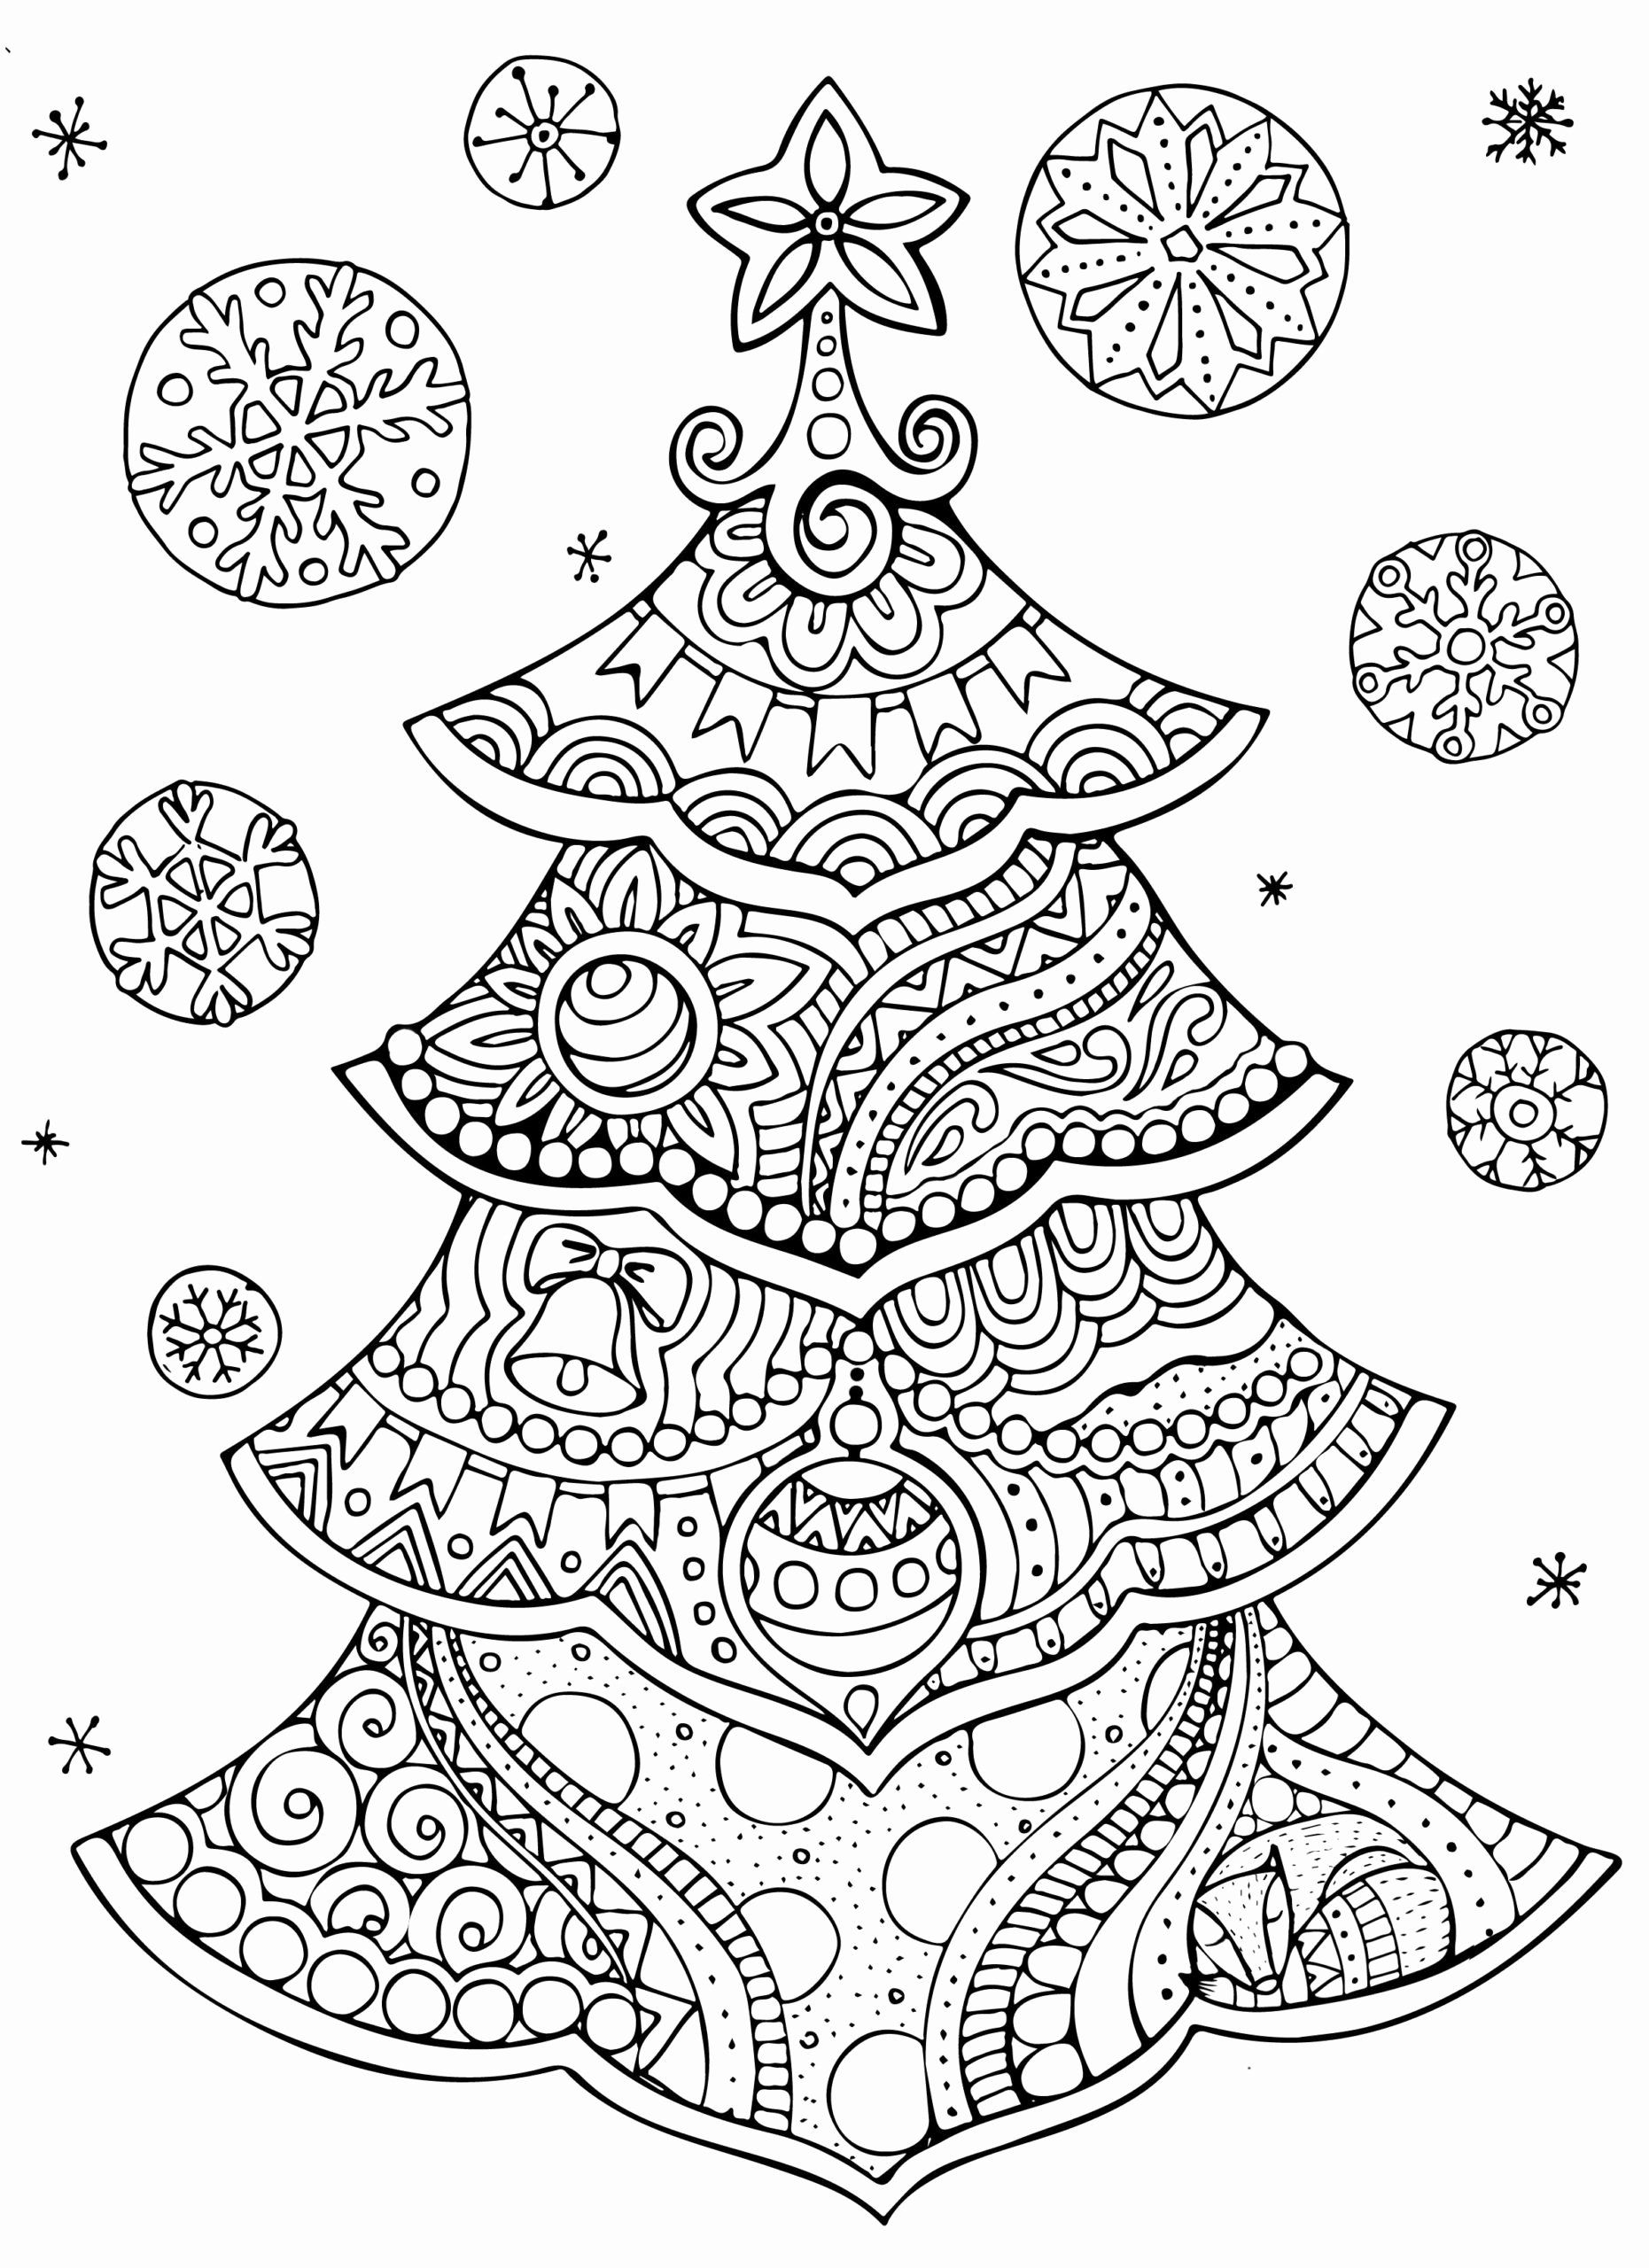 Free Printable Holiday Coloring Pages Beautiful Coloring Pages Coloring Fabulou In 2020 Christmas Coloring Pages Free Christmas Coloring Pages Christmas Coloring Books